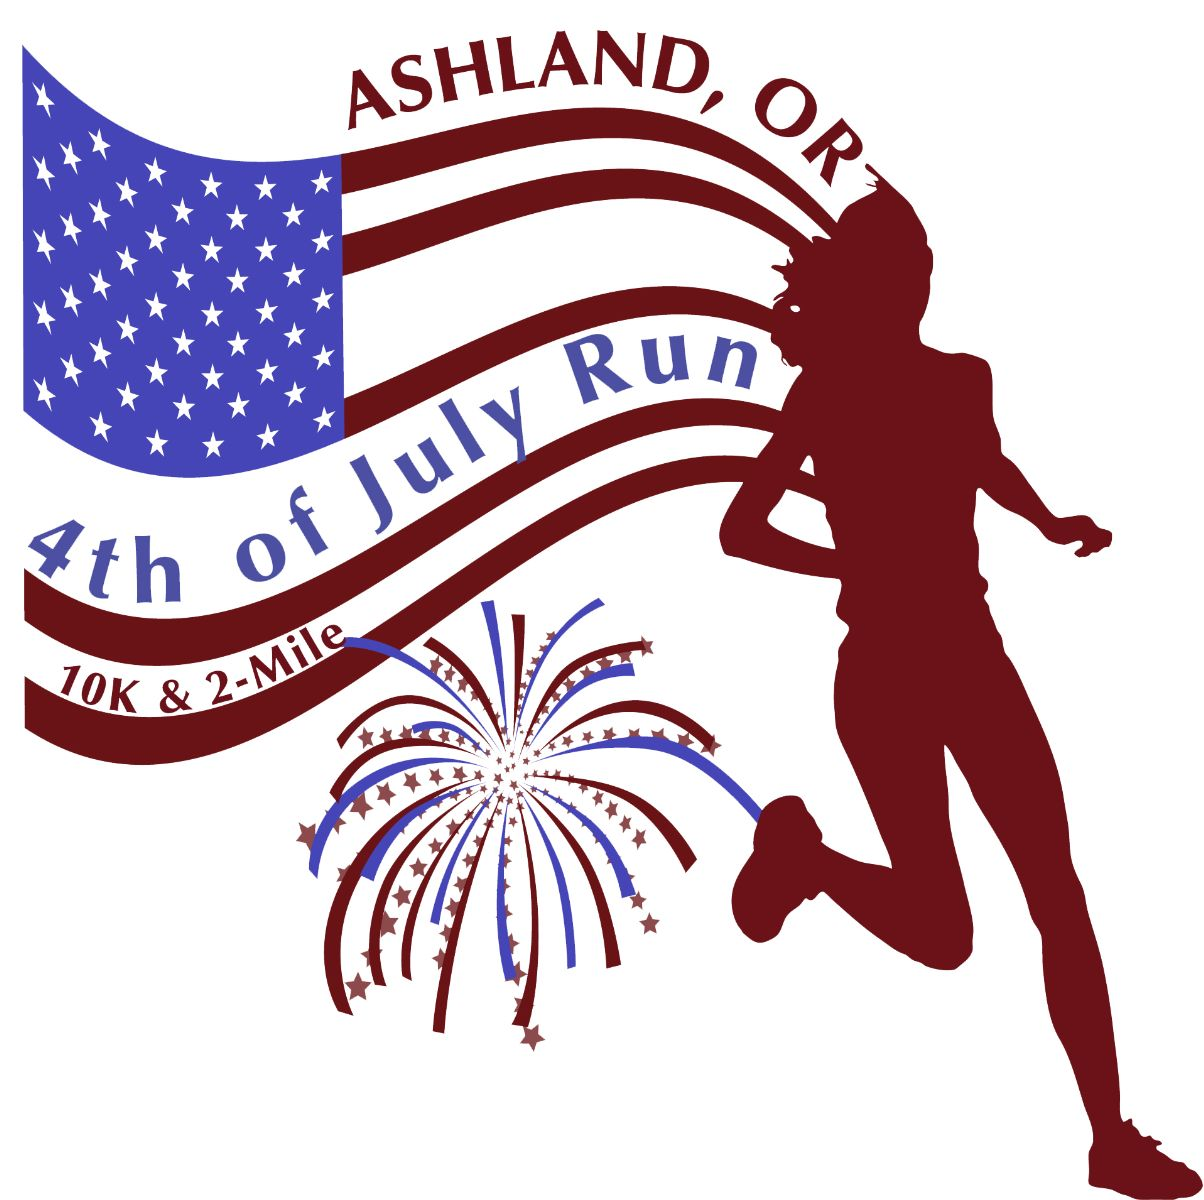 4th July Run Event Logo